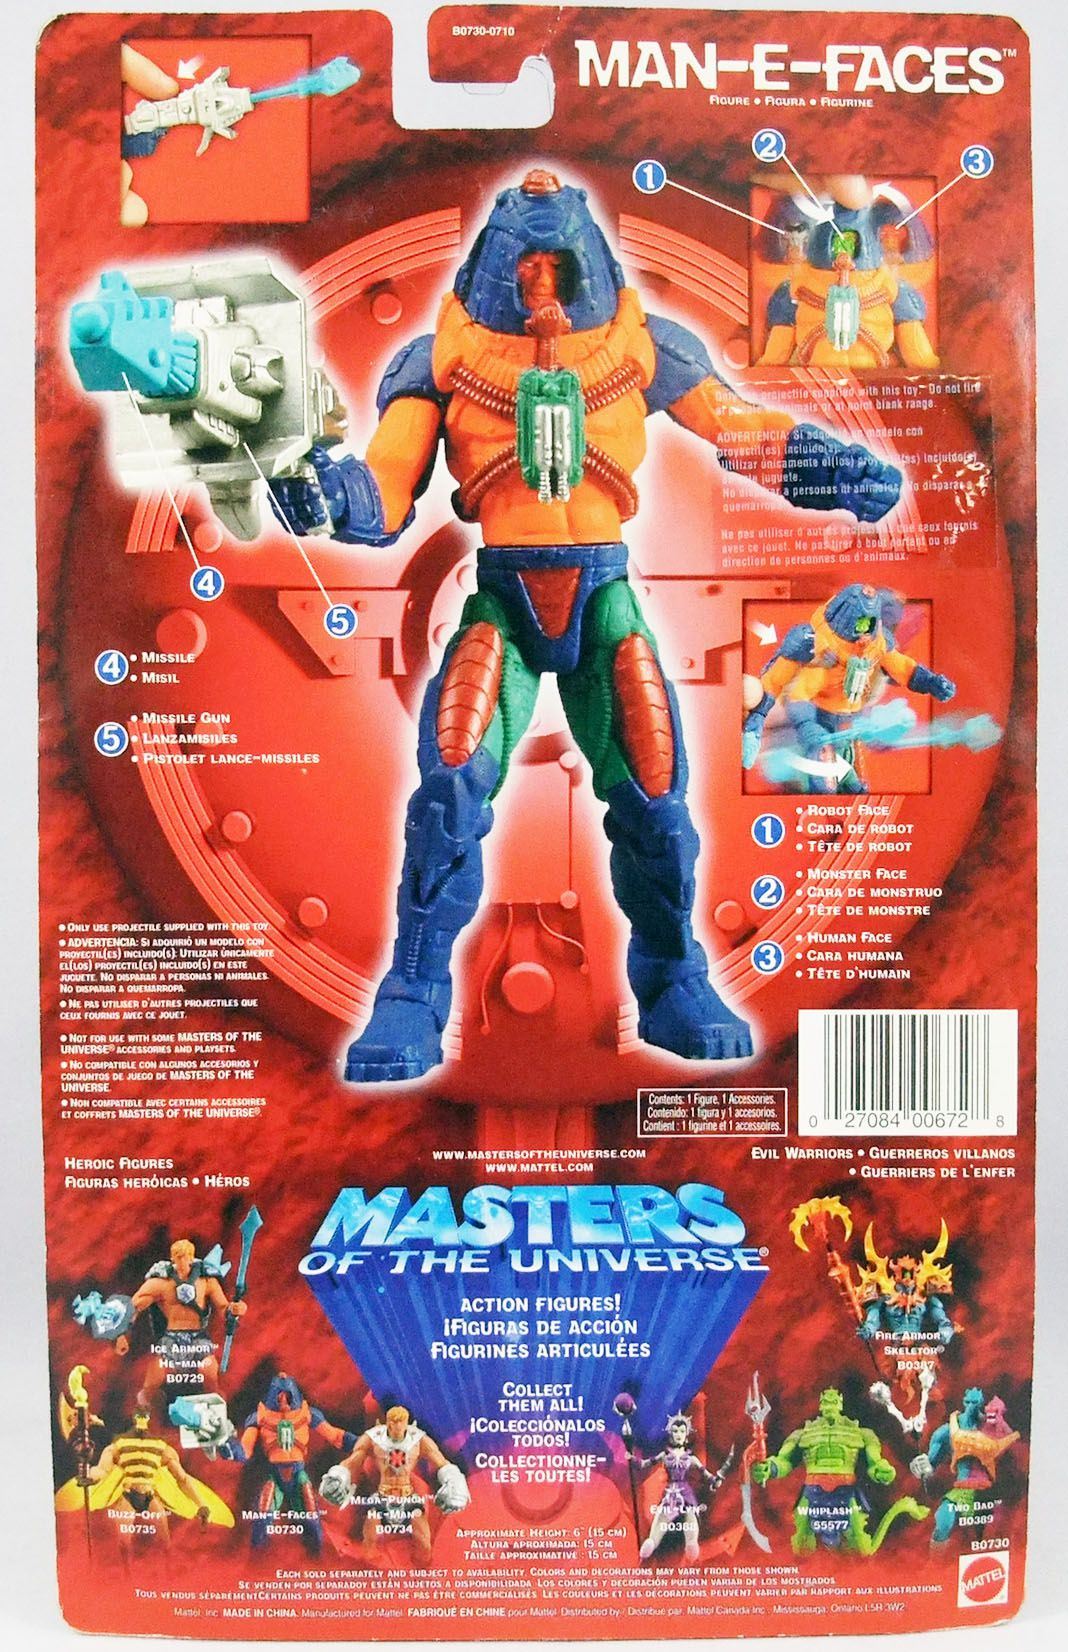 Masters of the Universe 200X - Man-E-Faces